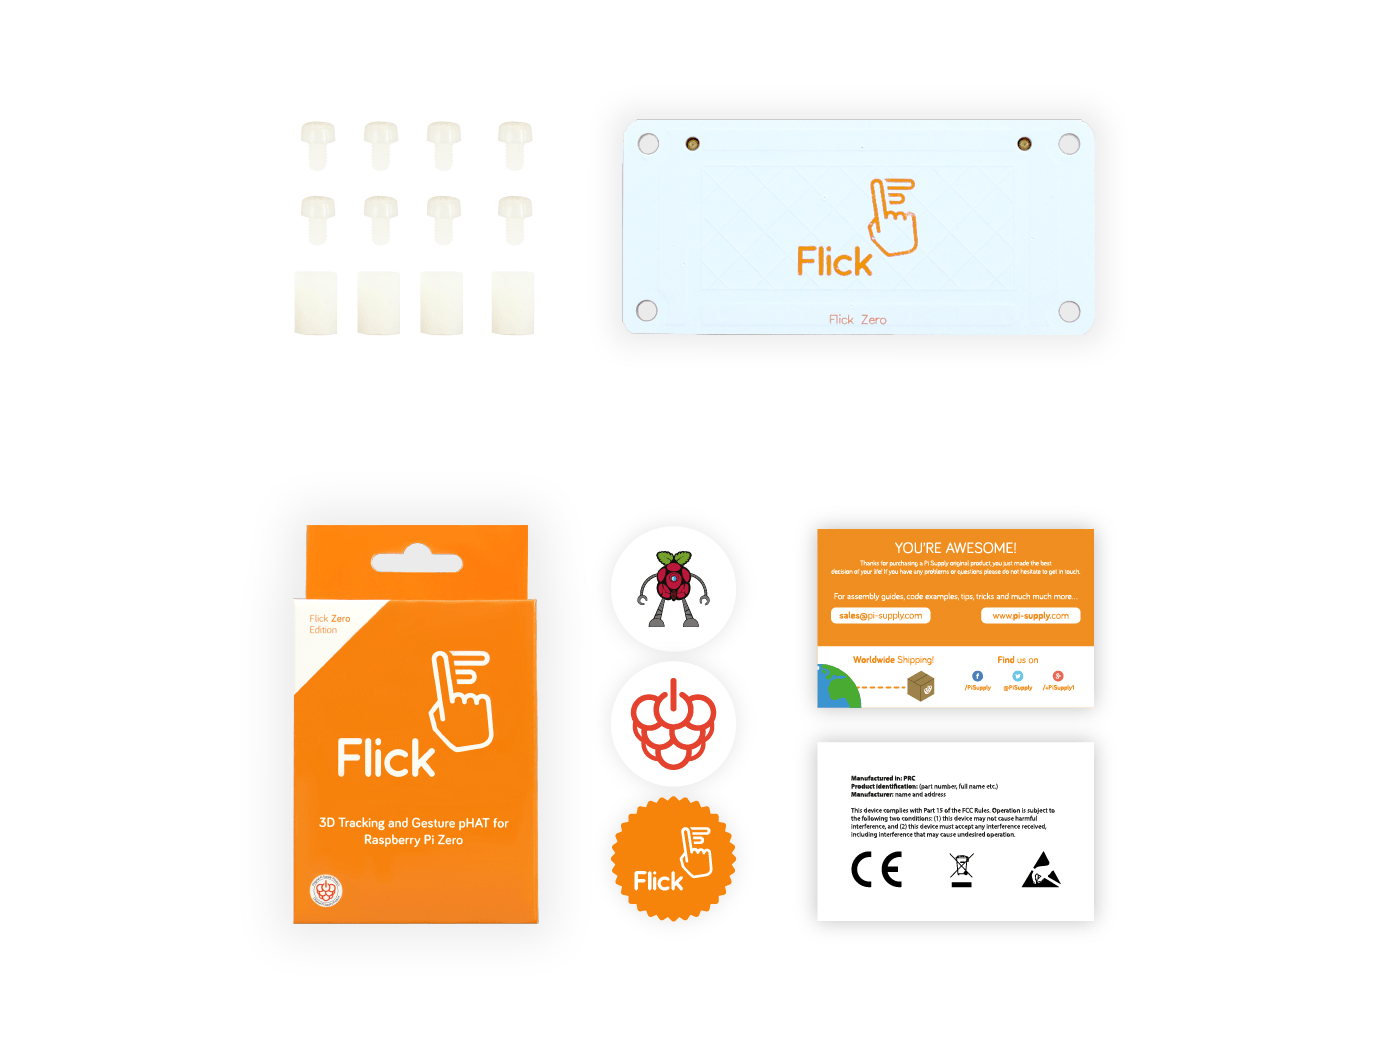 Flick Zero – 3D Tracking & Gesture pHAT for Raspberry Pi Zero